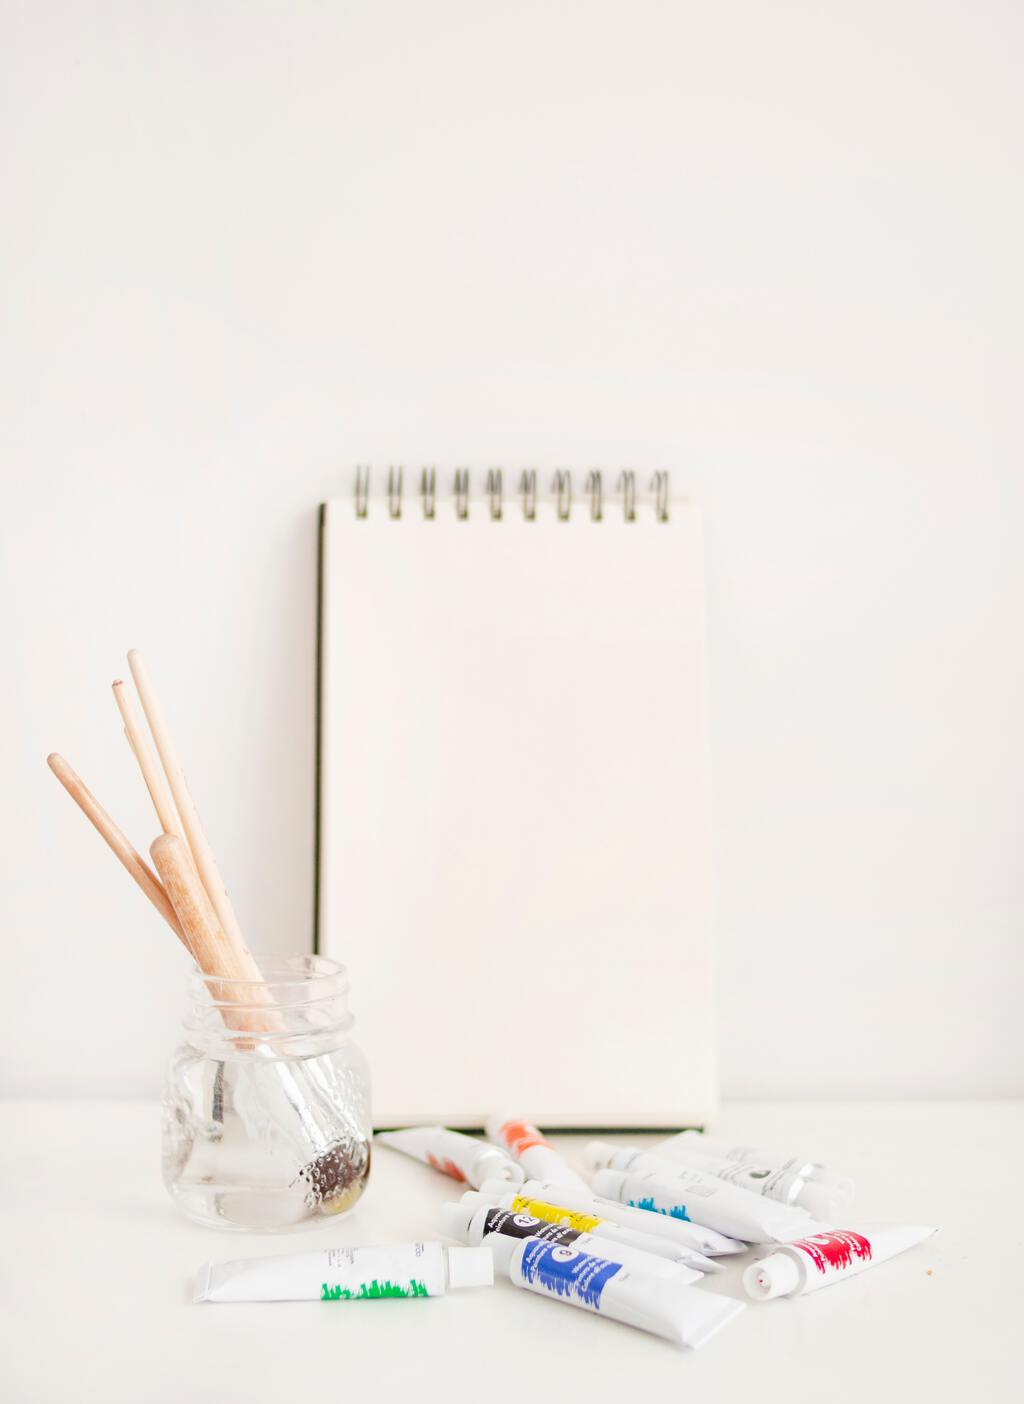 Paintbrushes, paint, and an empty notebook